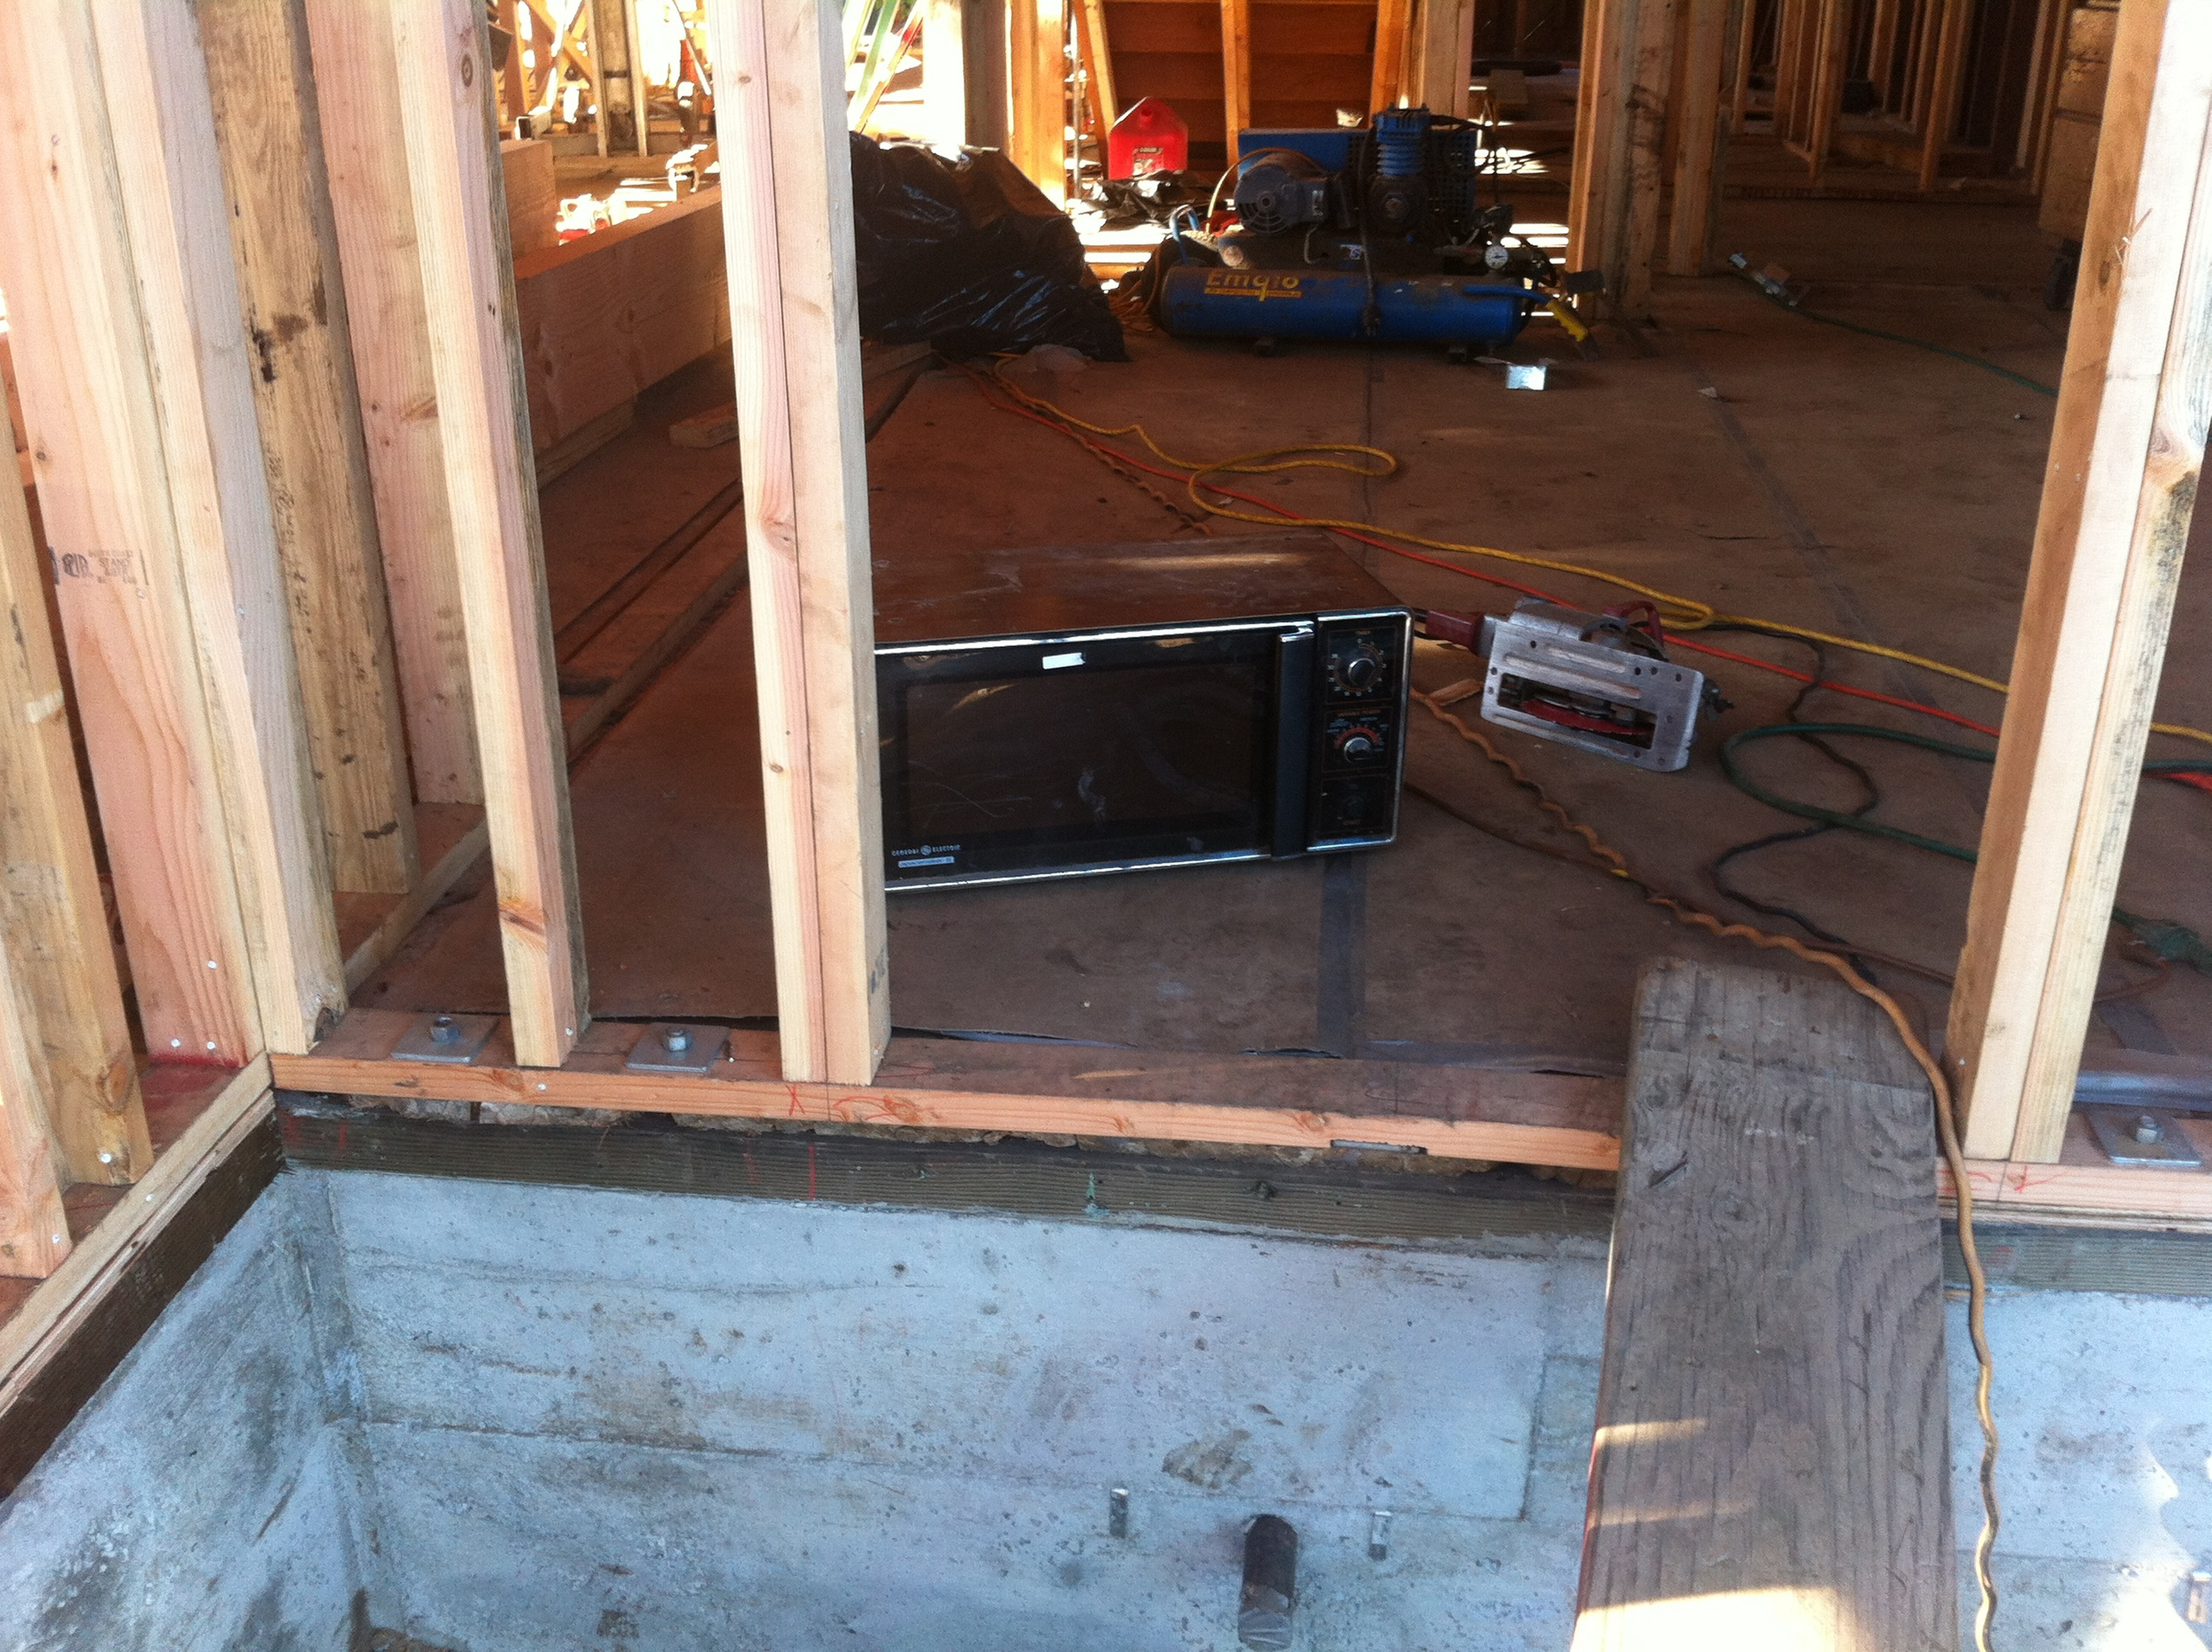 Microwaves are required job site equipment